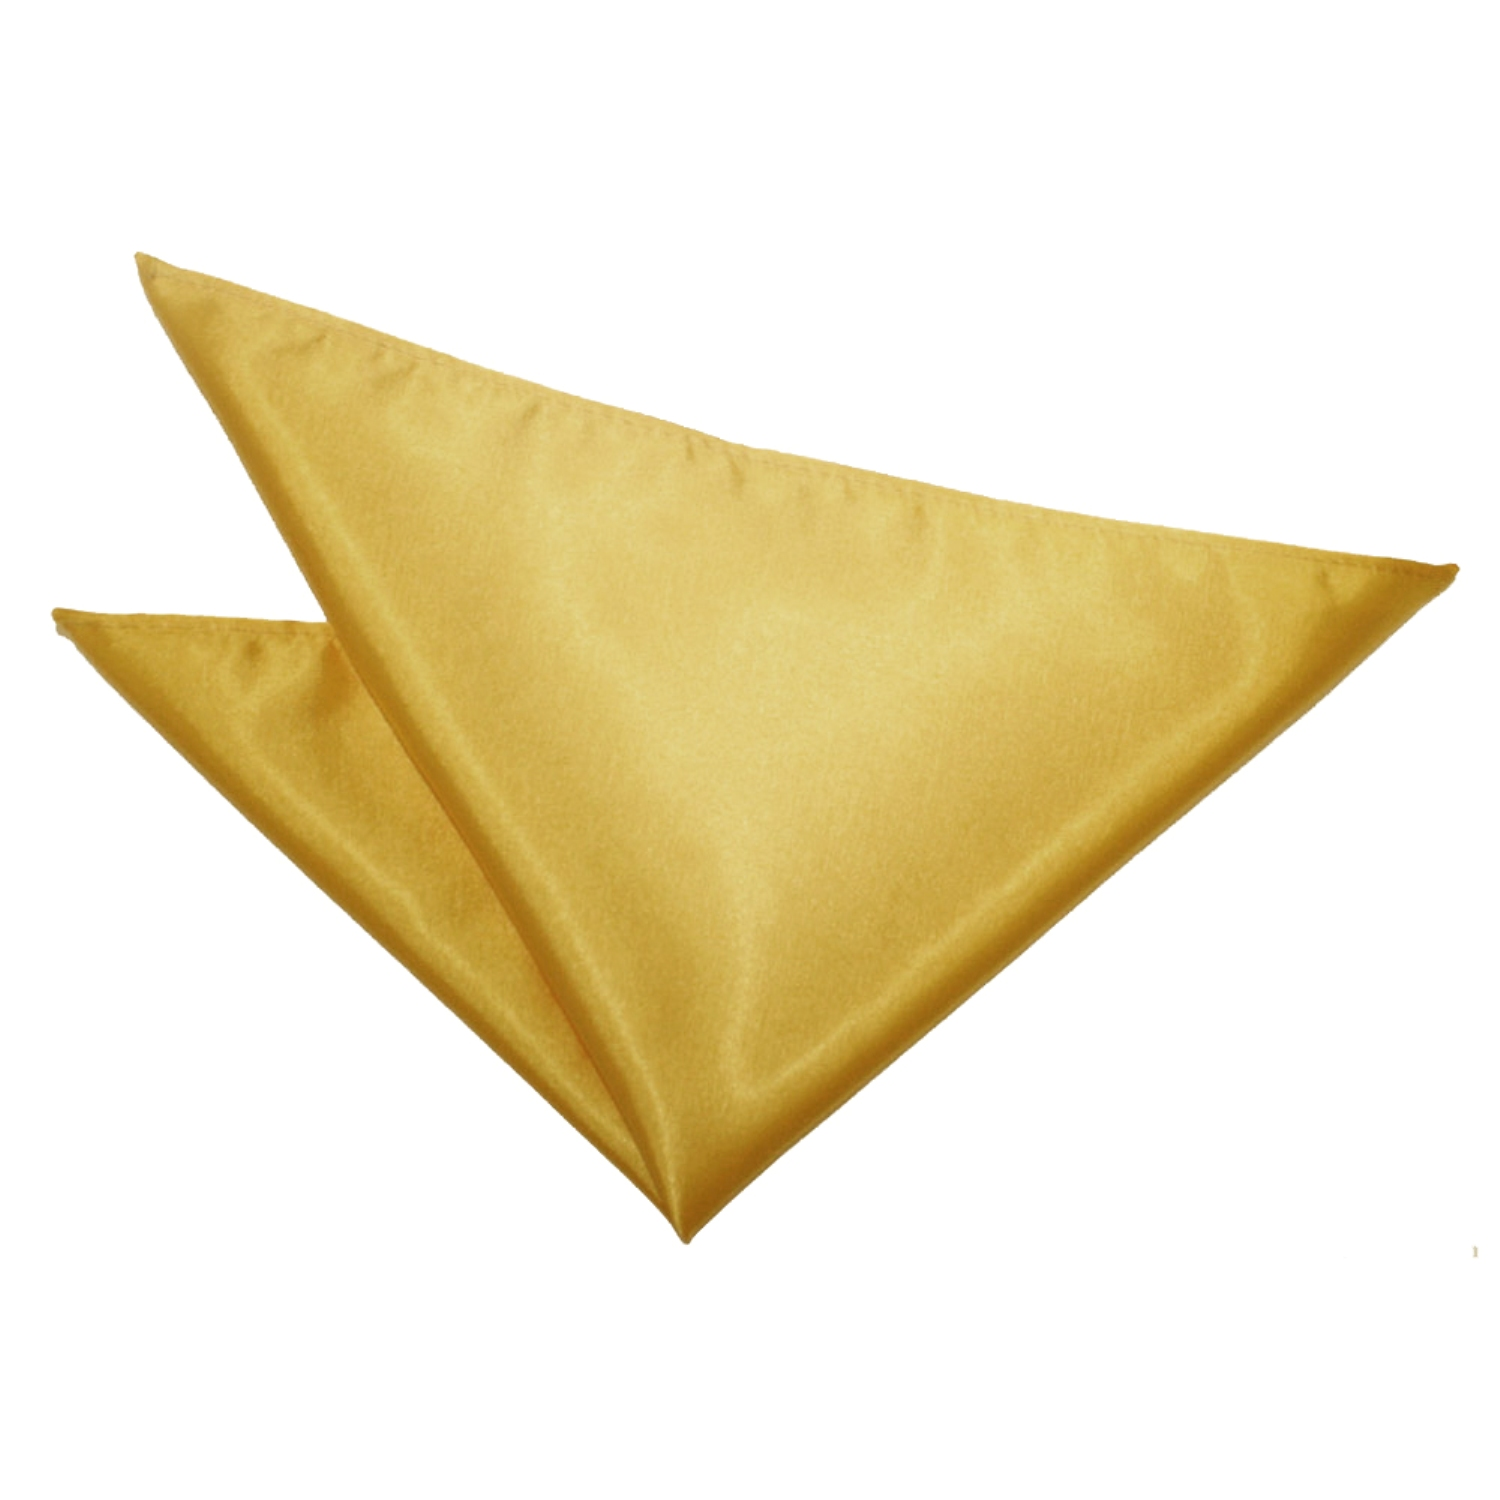 New polyester woven thin striped pocket square hankie handkerchief gold formal